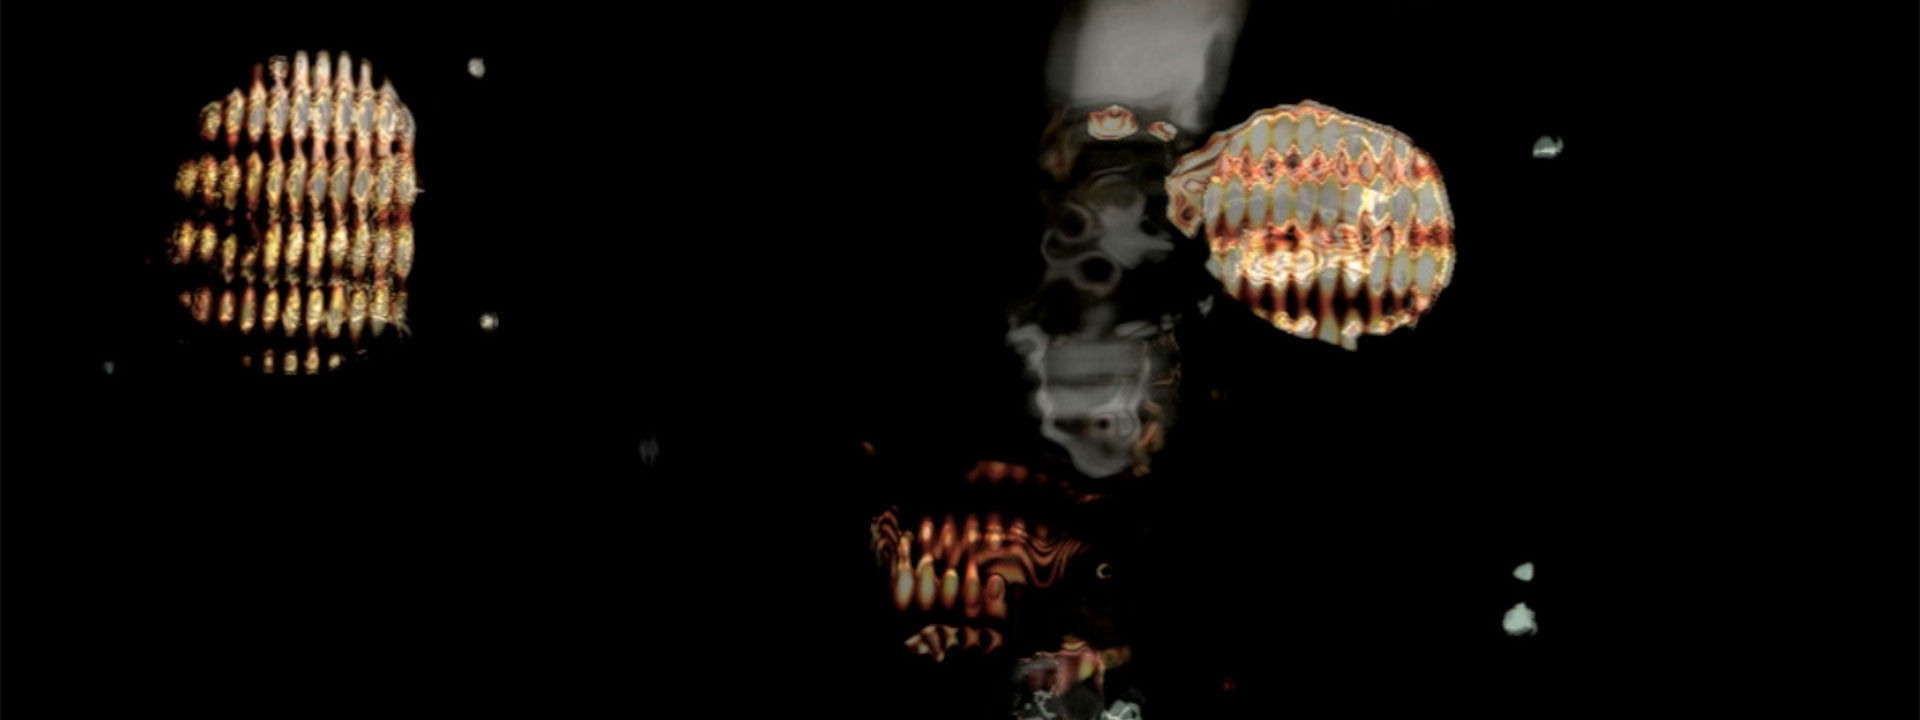 frame from abstract video